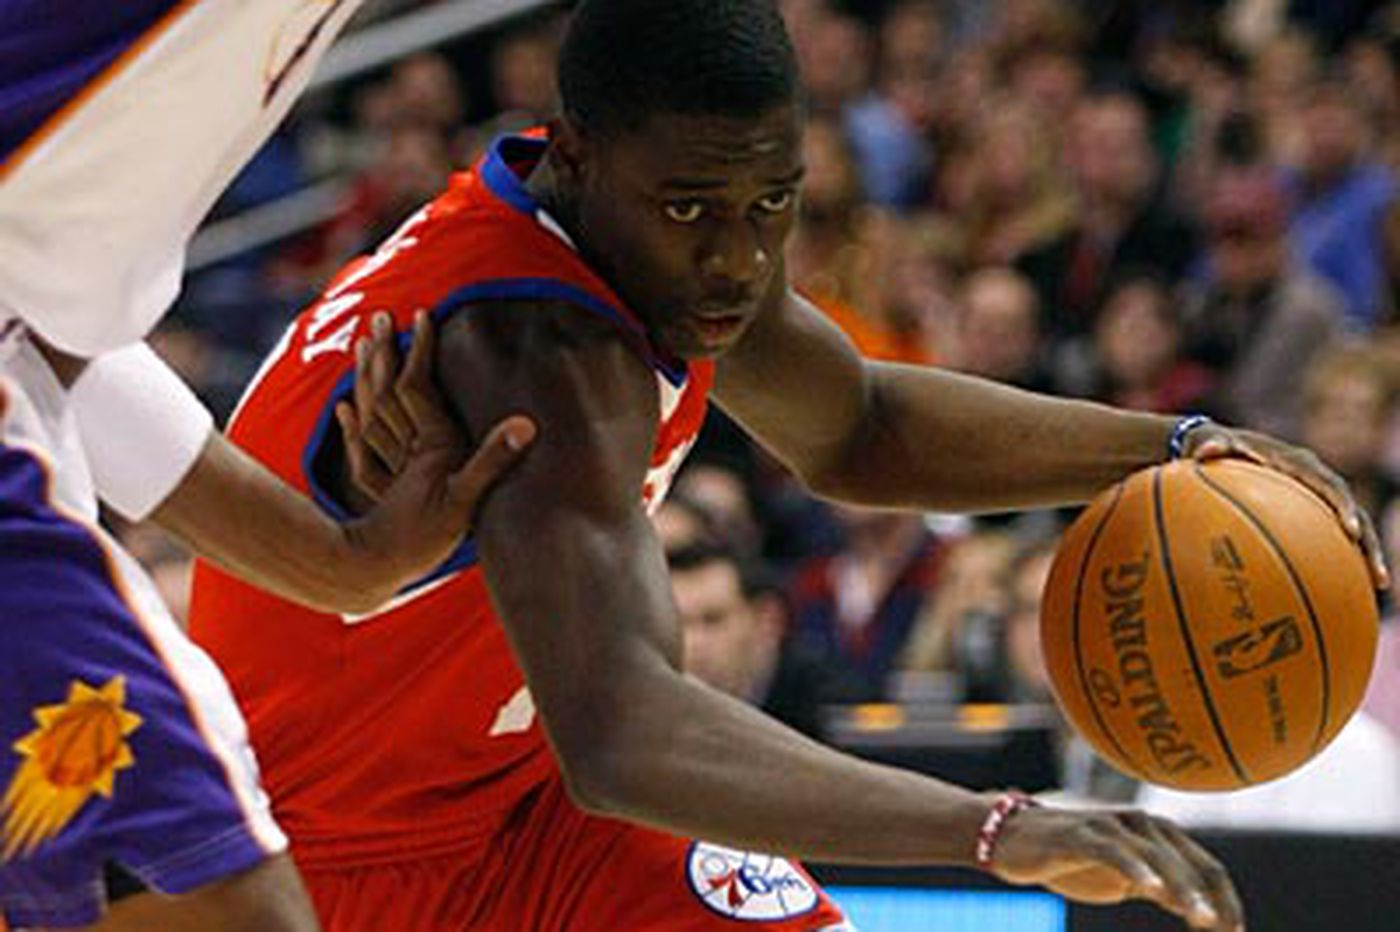 Turner's strong game helps Sixers beat Suns